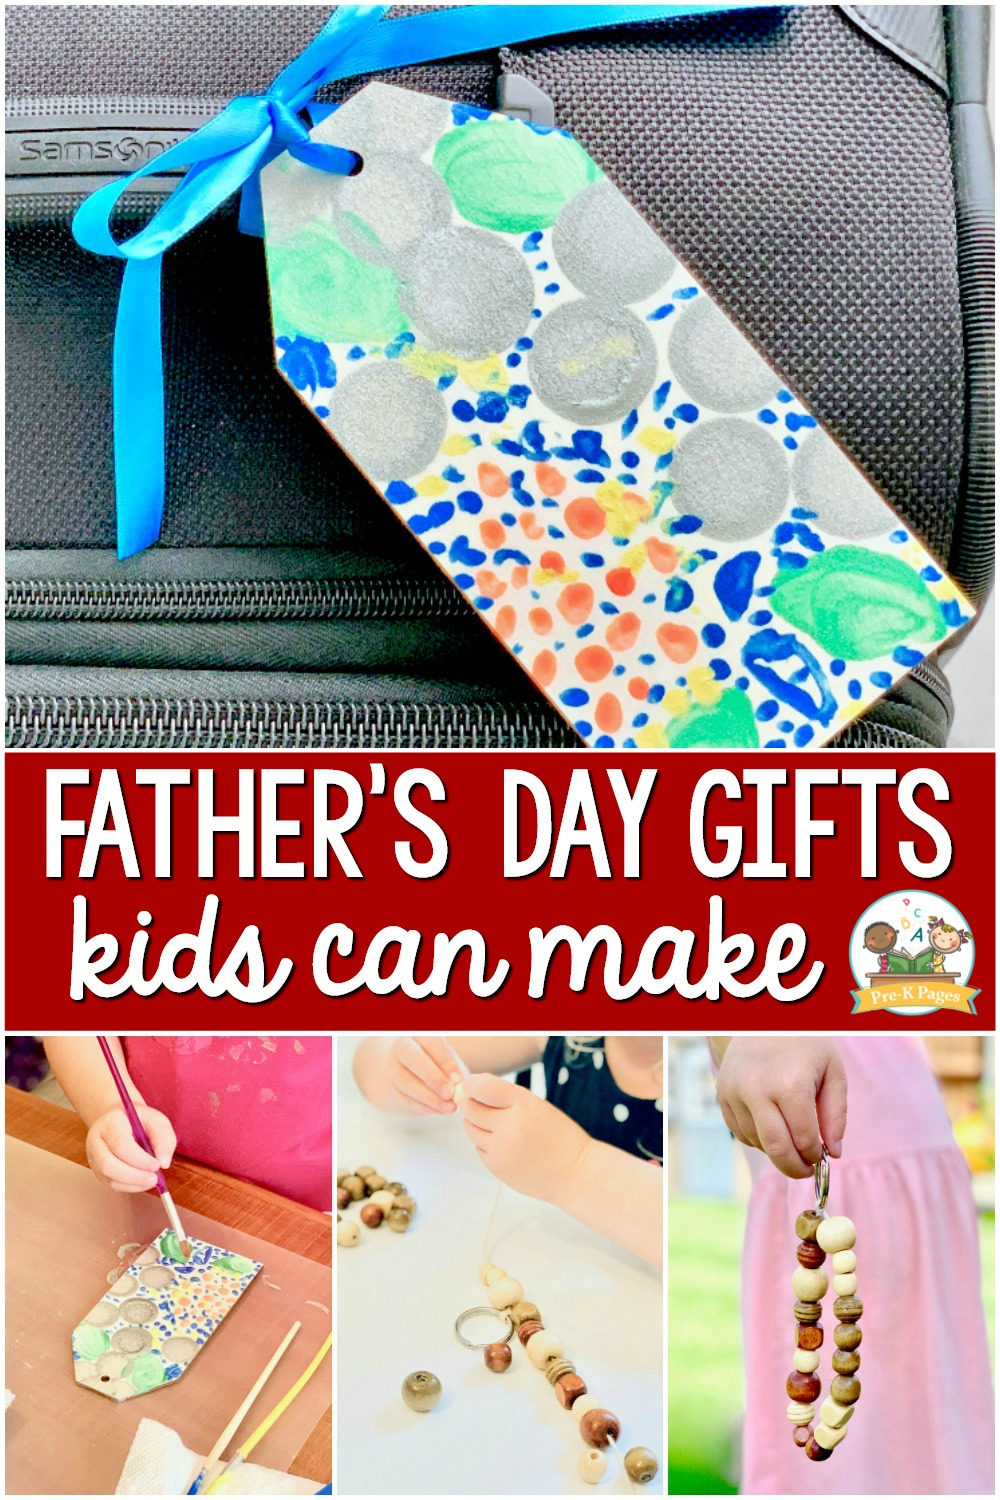 Father's Day Gifts Kids Can Make for Dad